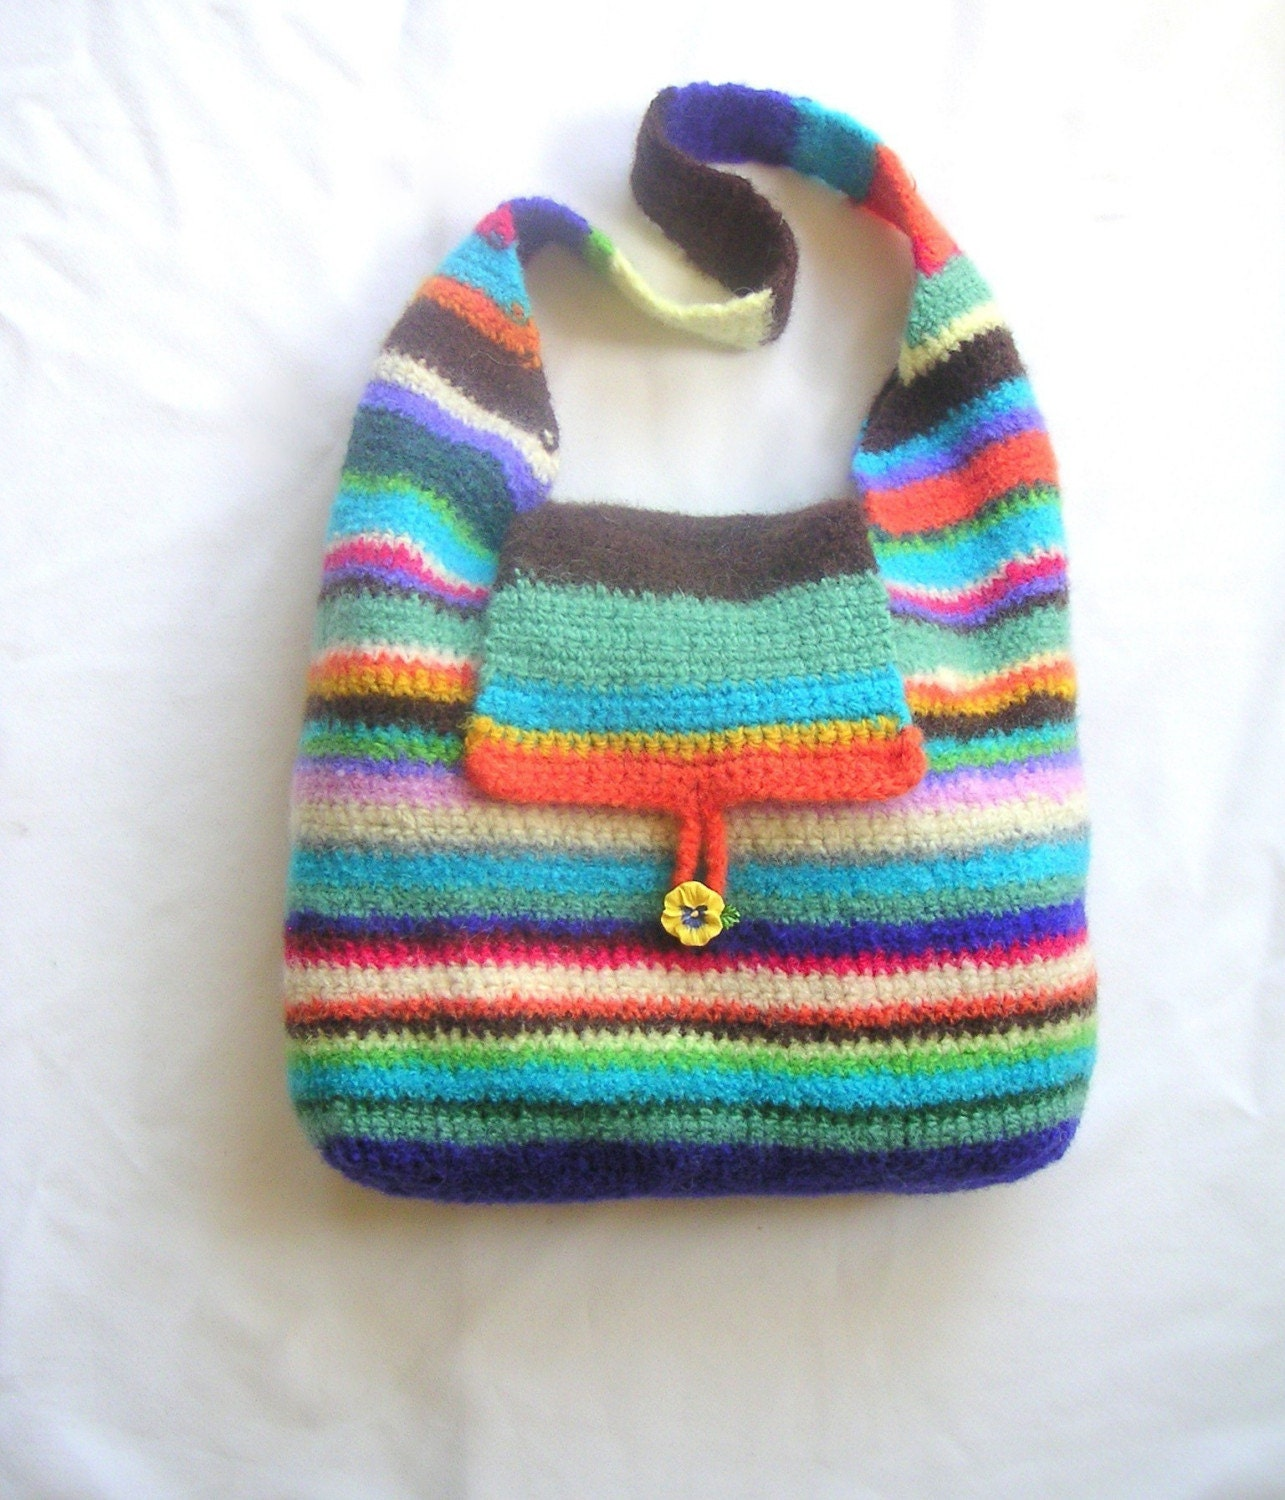 Crochet Hobo Bag Pattern : Classic Hobo Bag Crochet Felting Pattern by GraceKnittingPattern